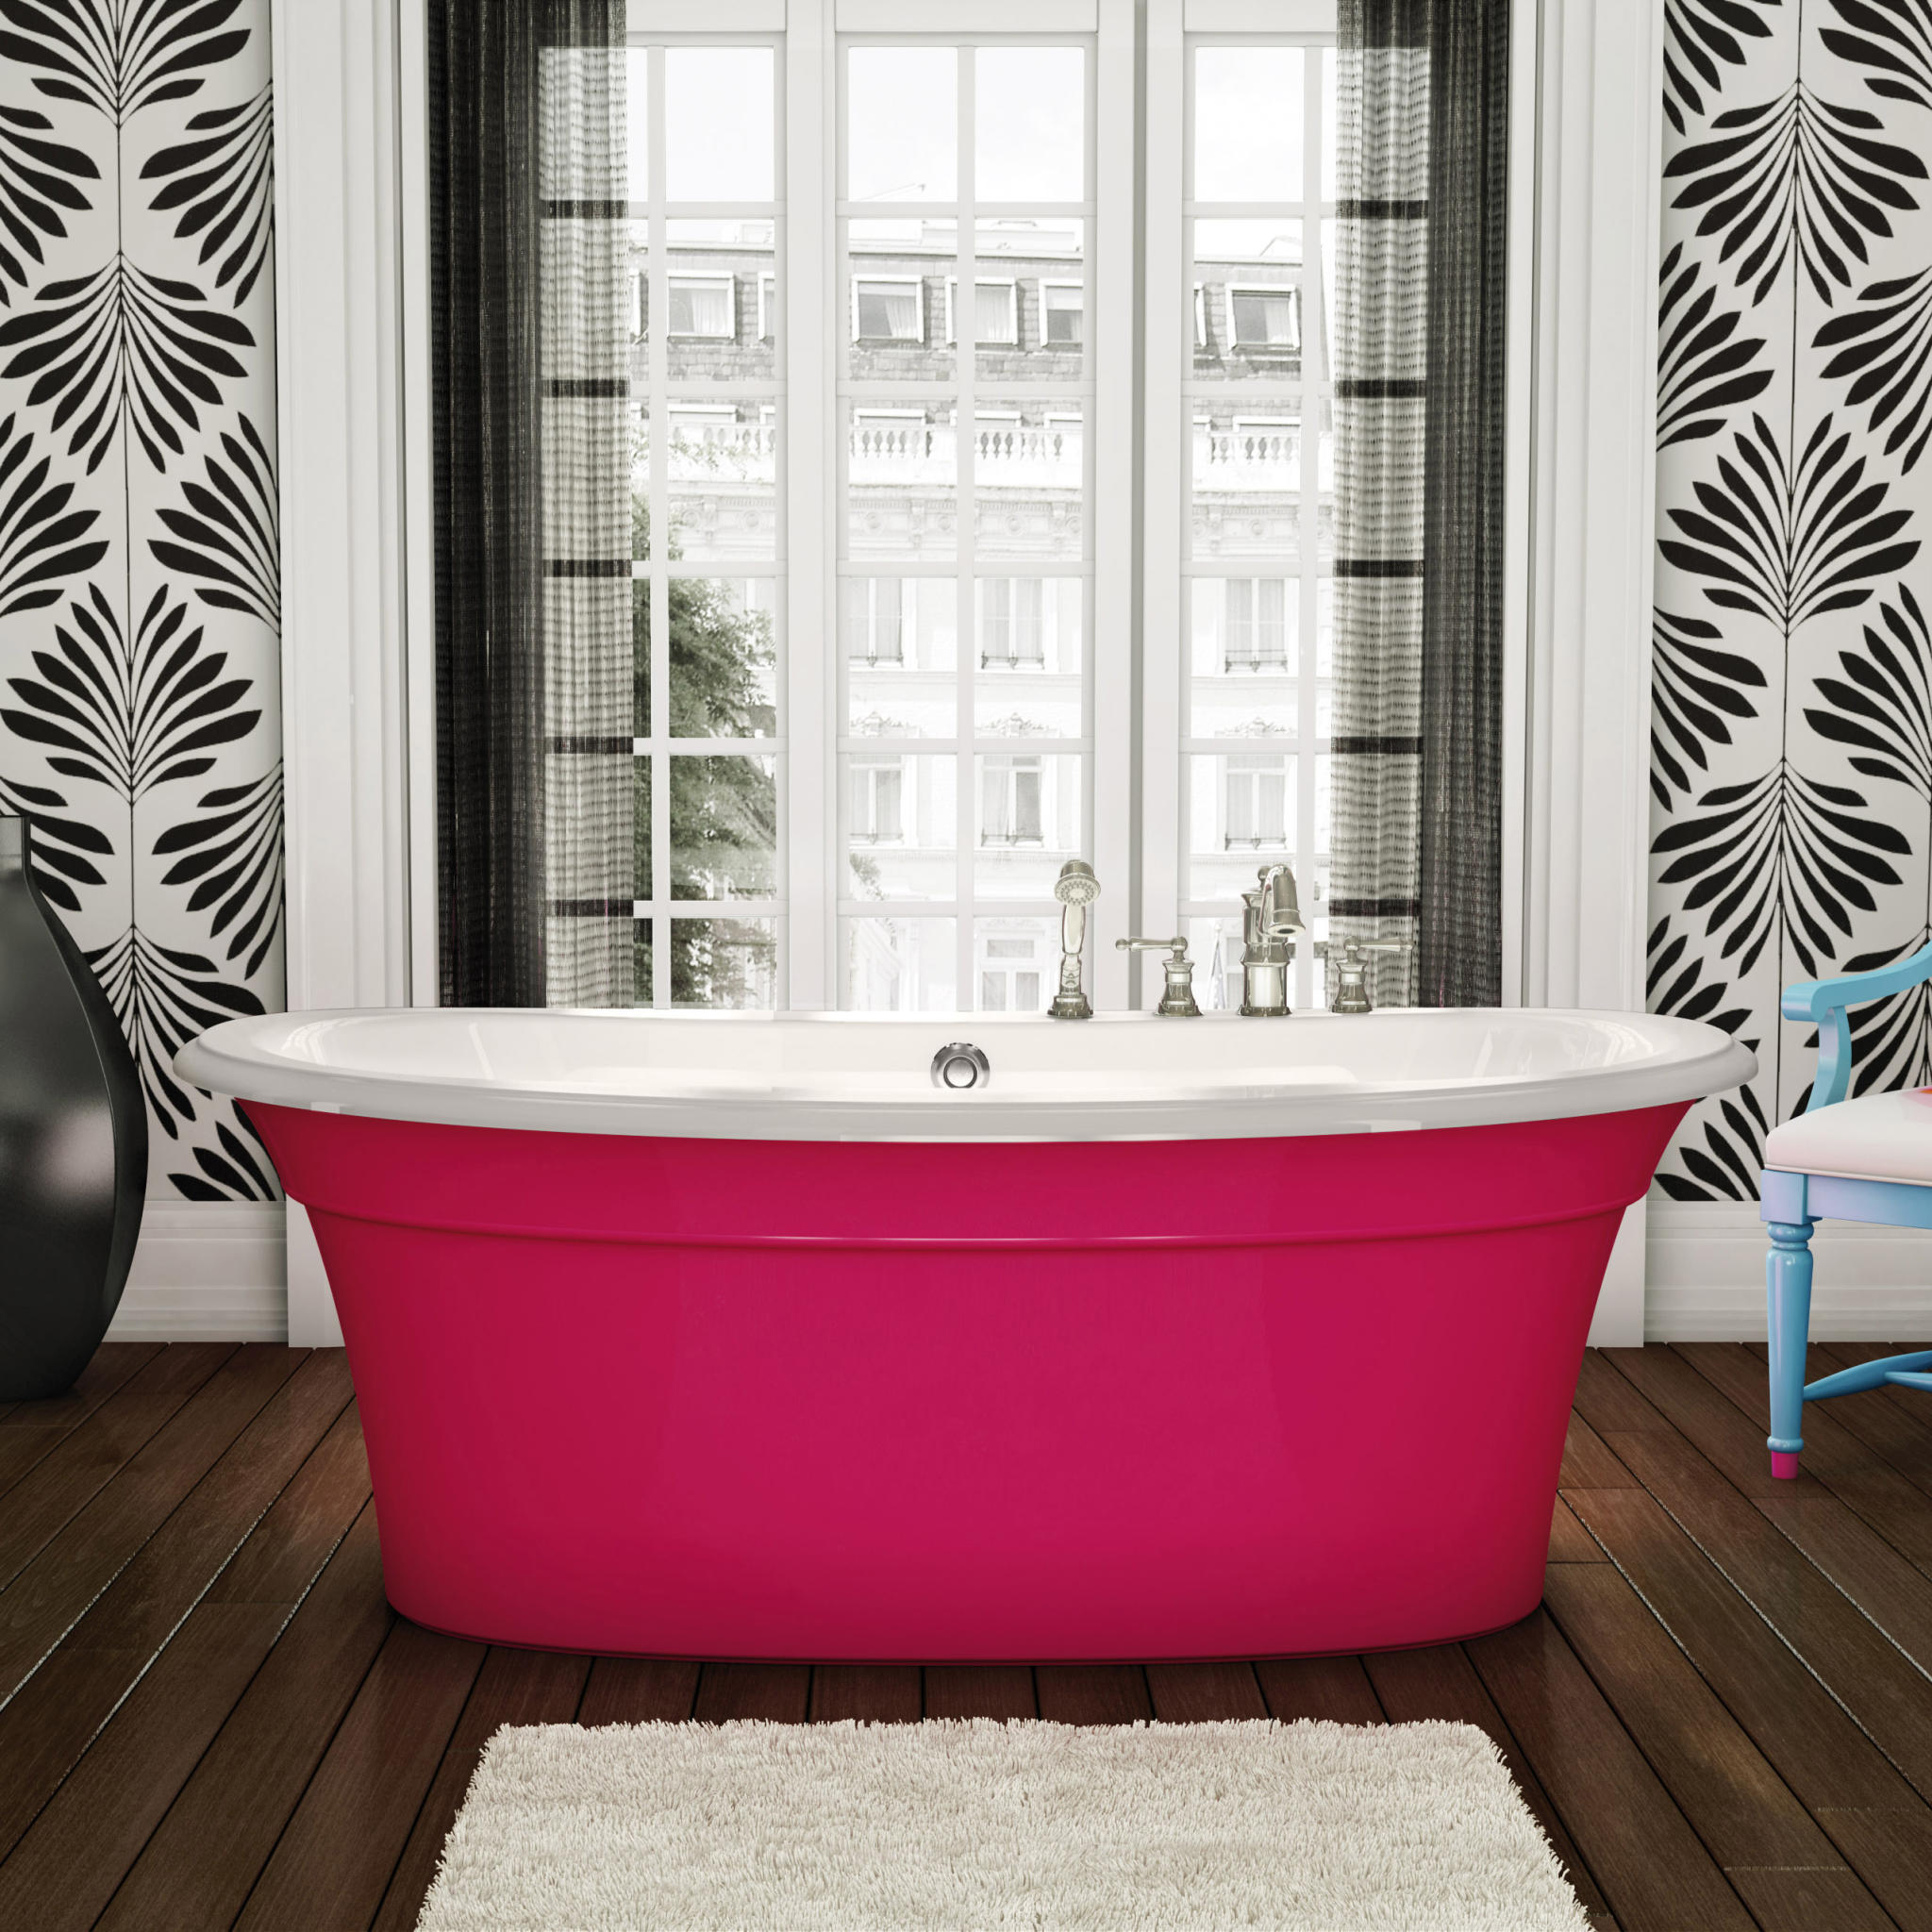 Attractive Maax Tub Shield Frieze - Luxurious Bathtub Ideas and ...